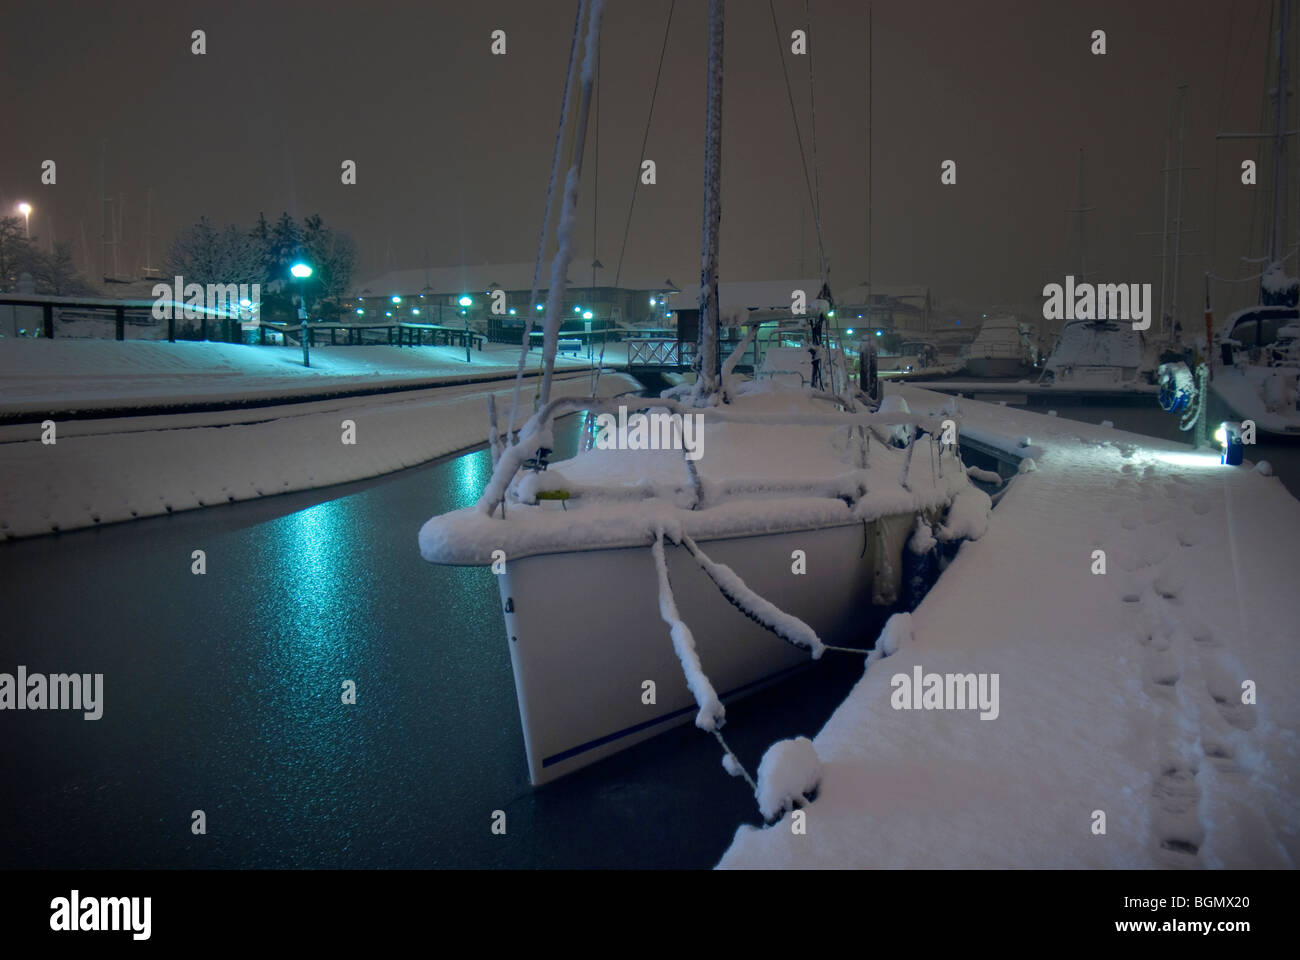 yacht covered in snow - Stock Image